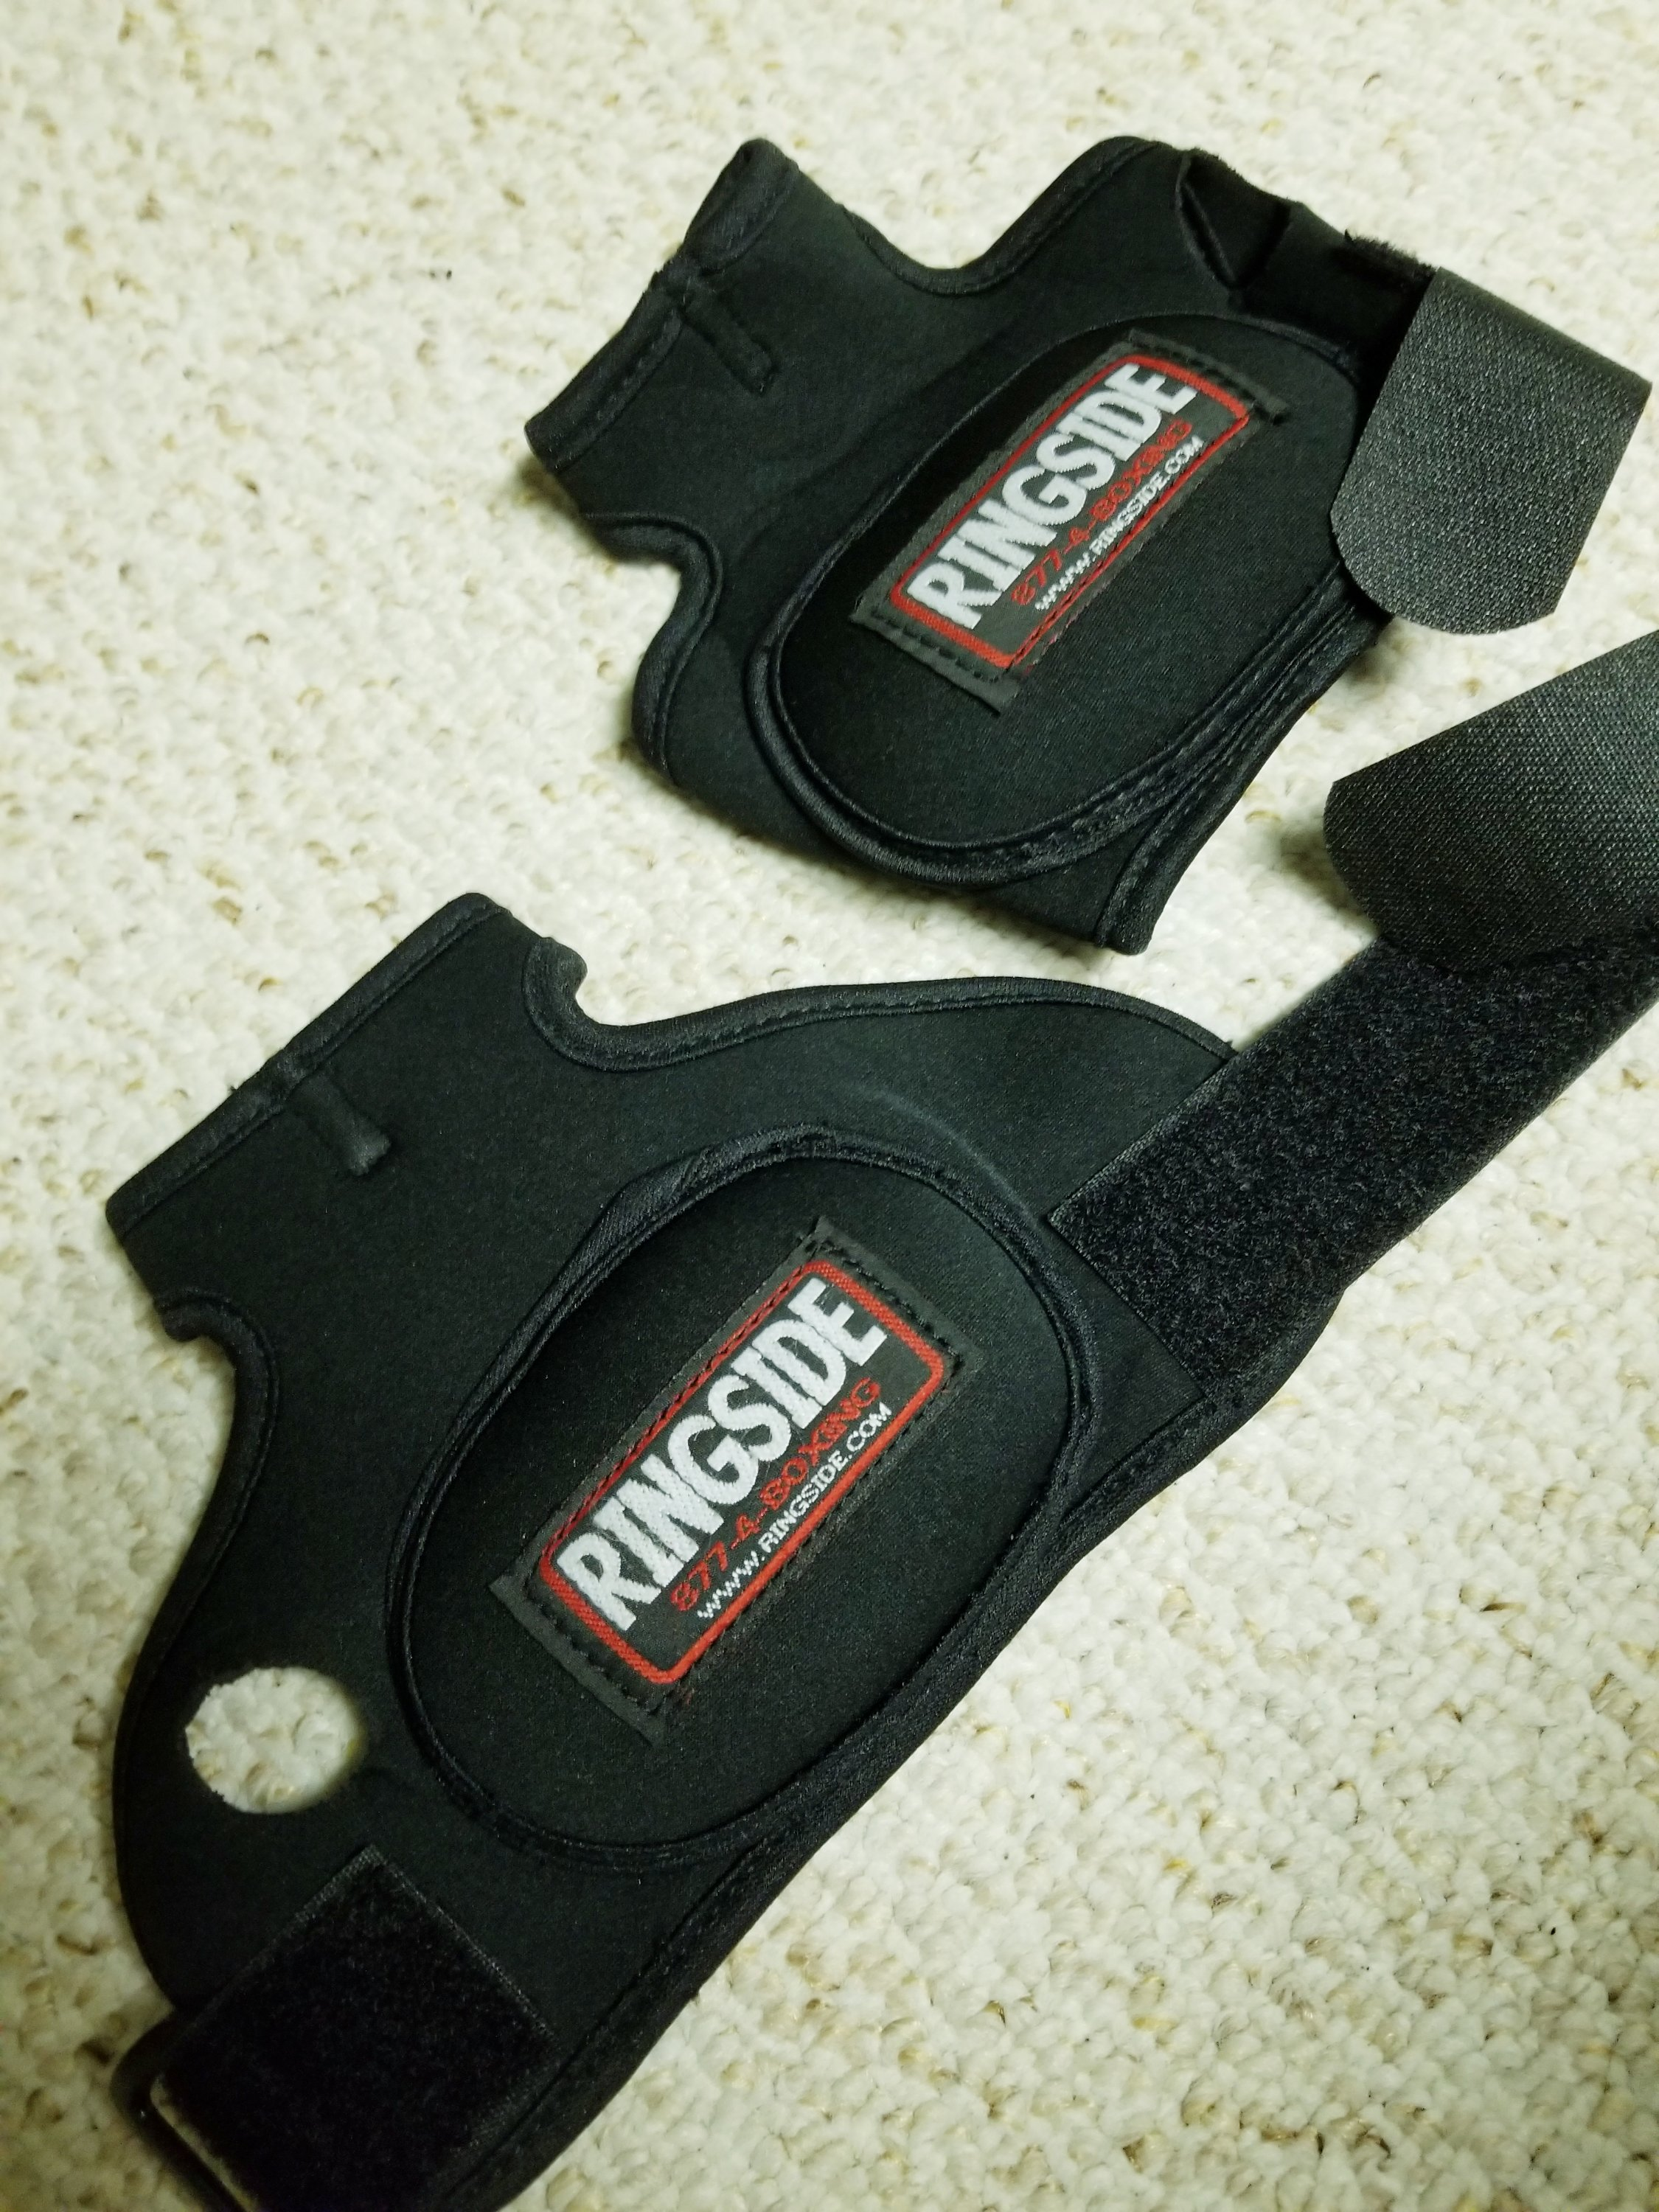 Weighted Boxing Gloves